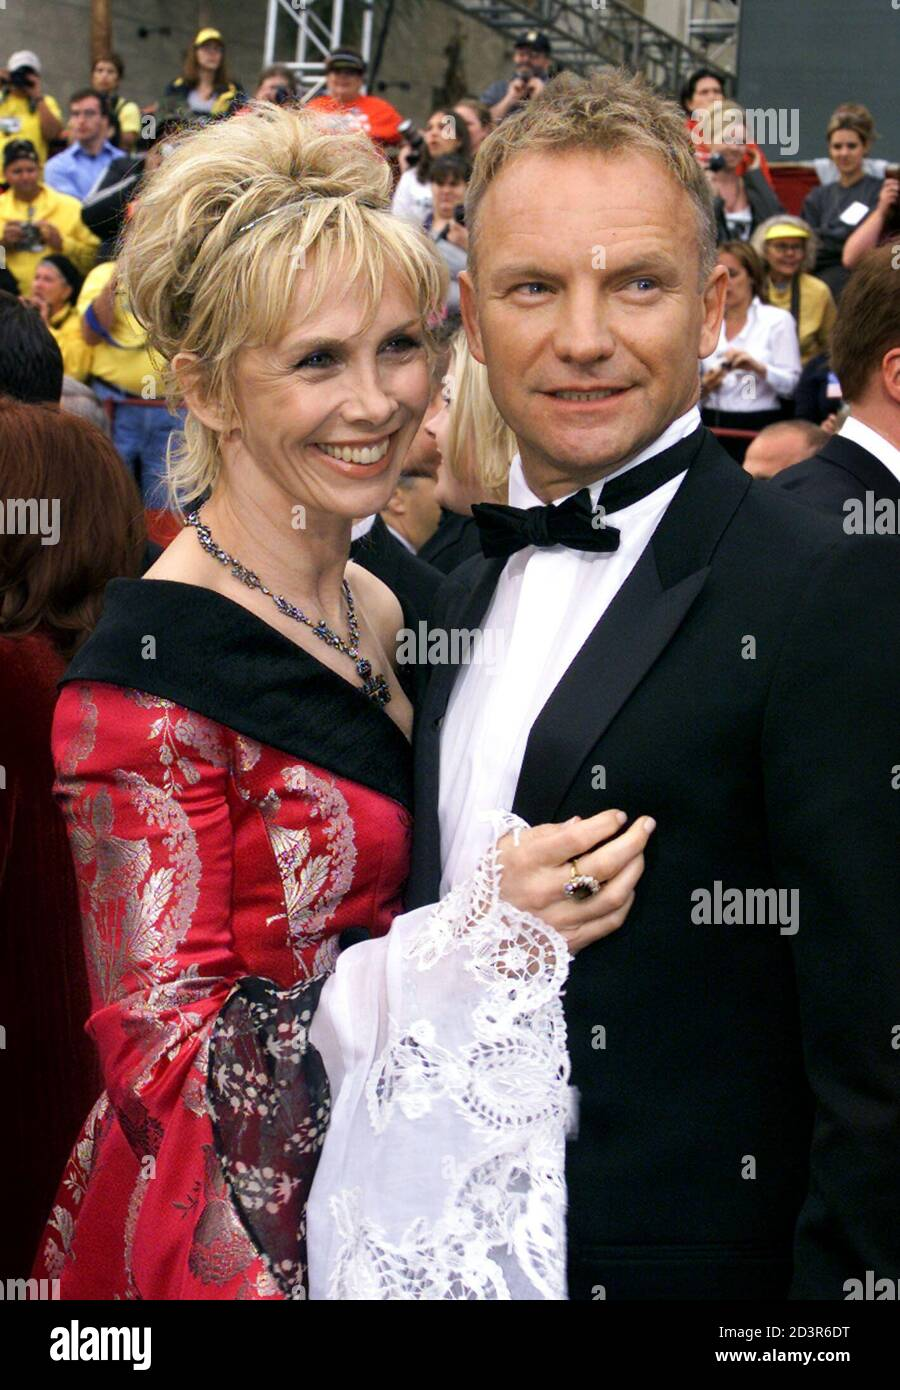 """Musician Sting, nominated for best song for """"Until"""" from the film """"Kate & Leopold,"""" arrives with his wife Trudie Styler at the 74th annual Academy Awards March 24, 2002 in Hollywood. Foto de stock"""